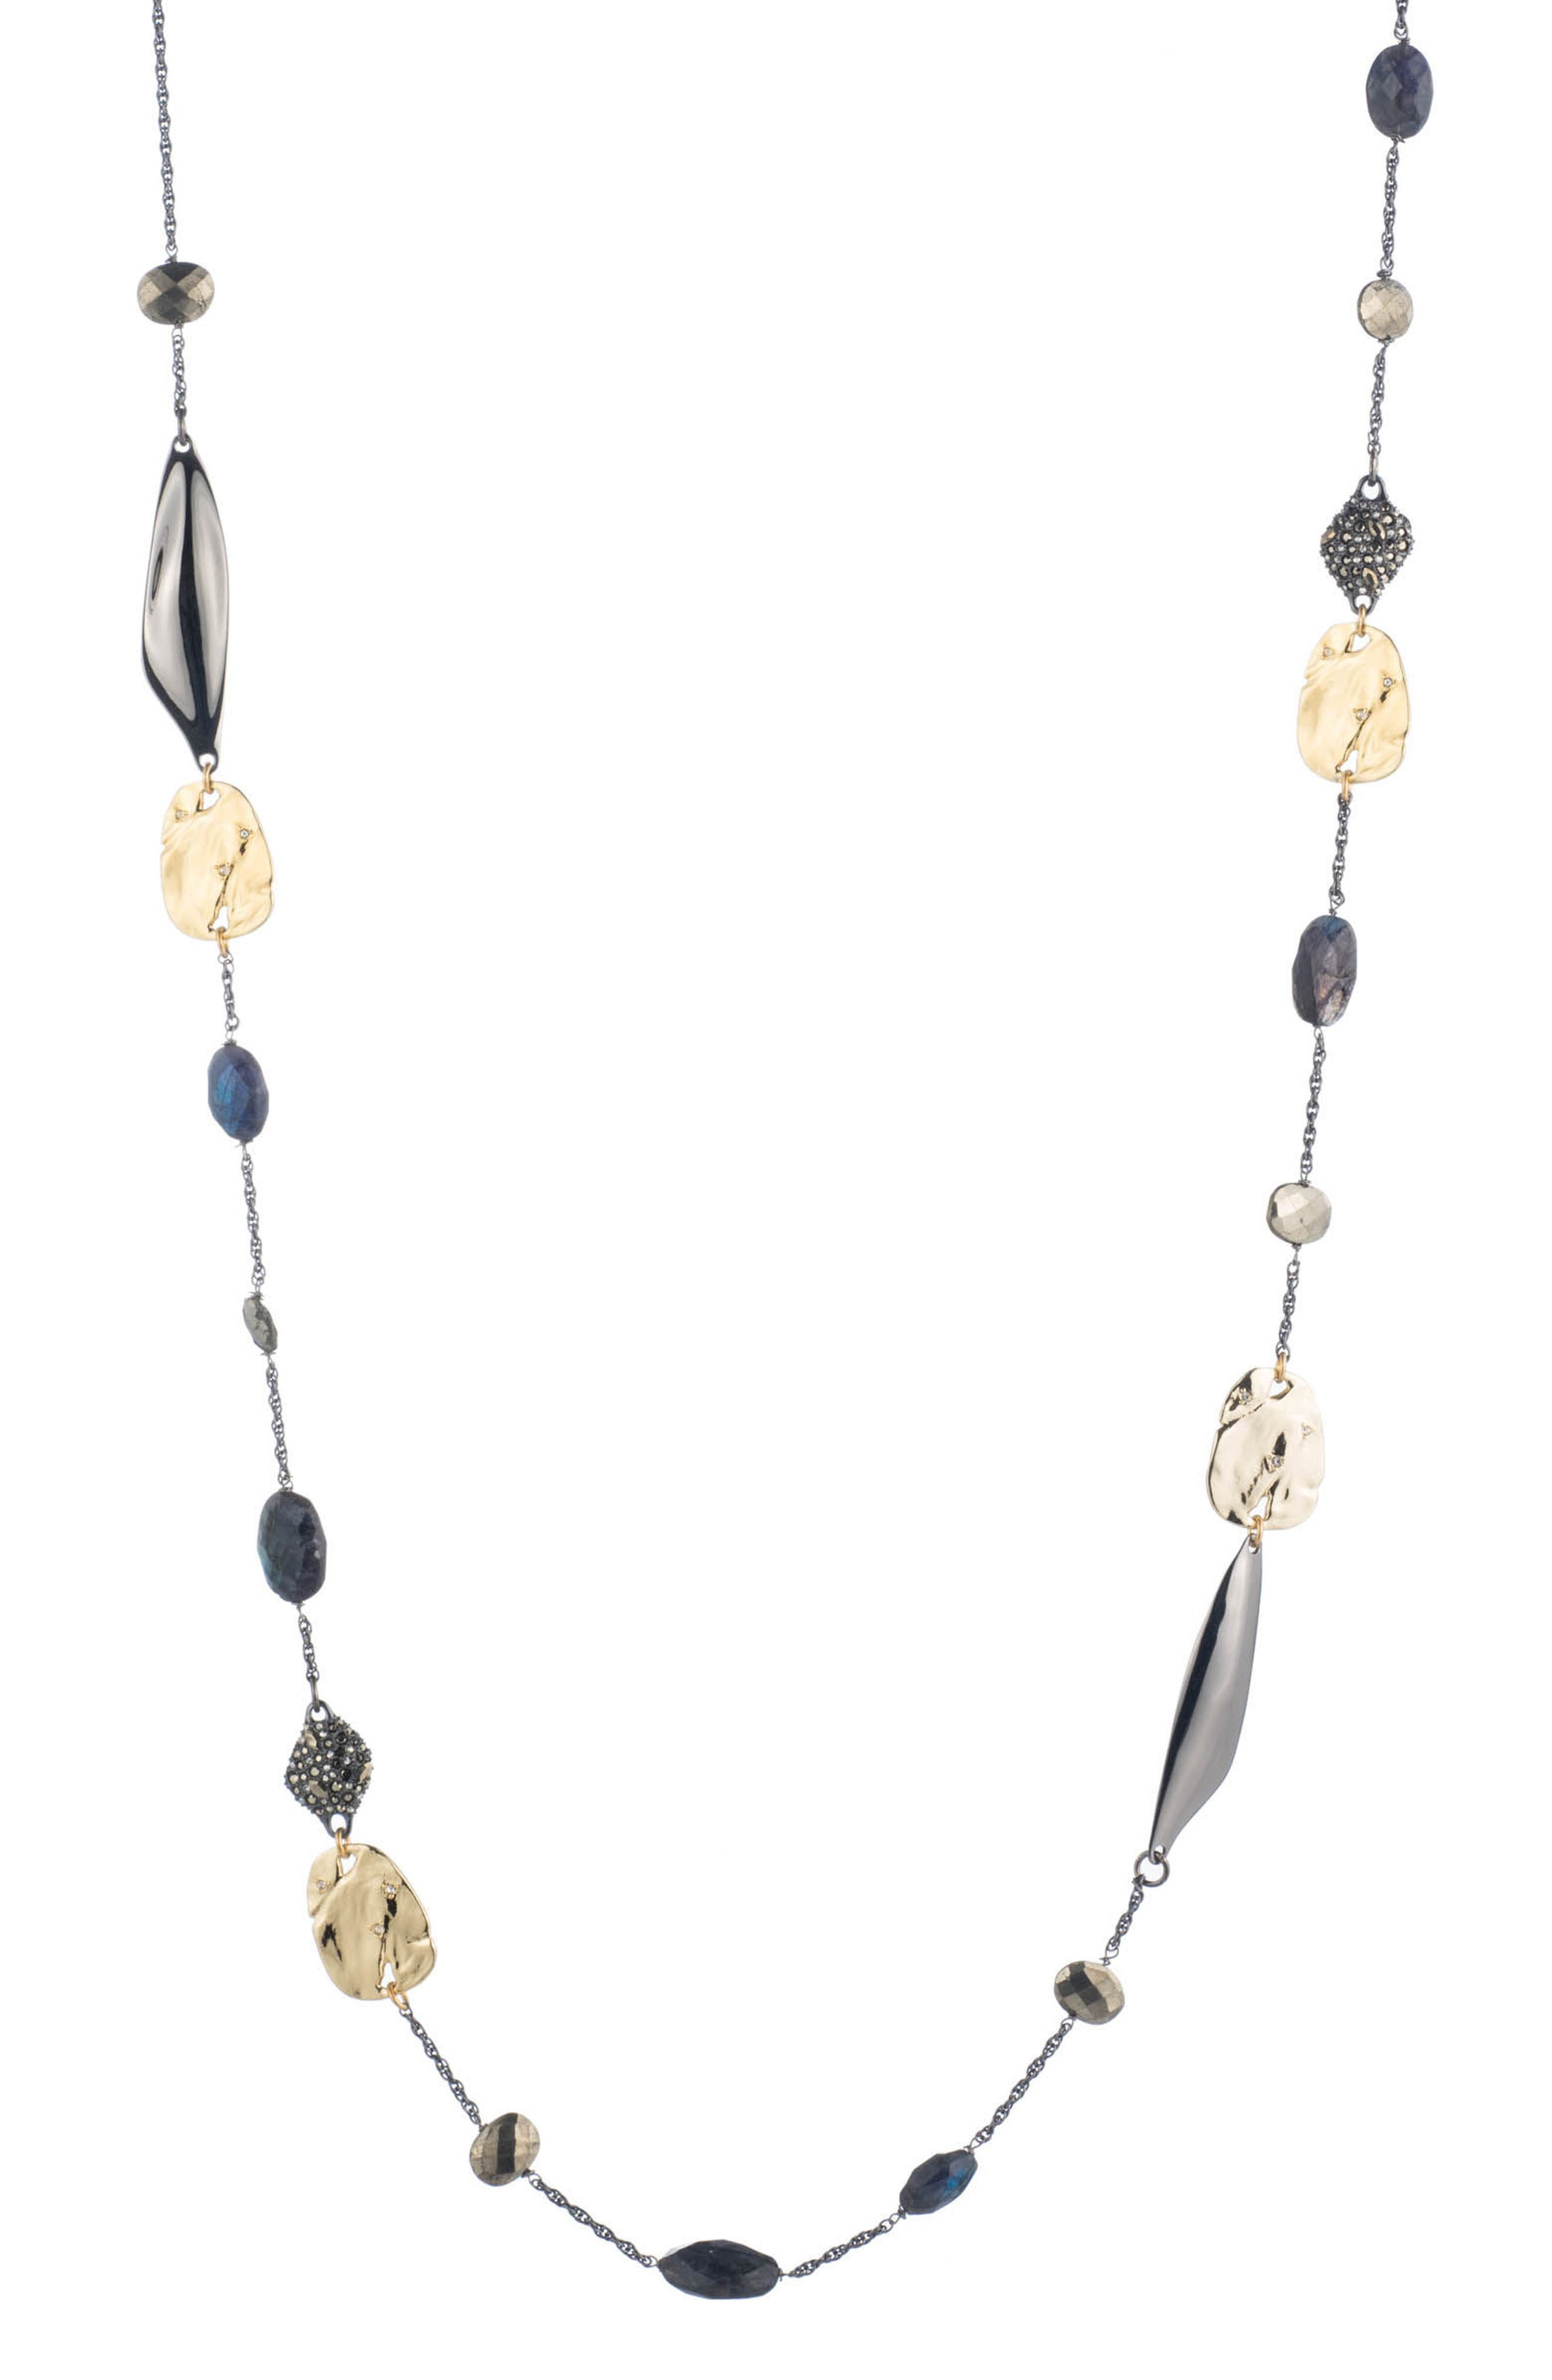 Main Image - Alexis Bittar Elements Station Necklace